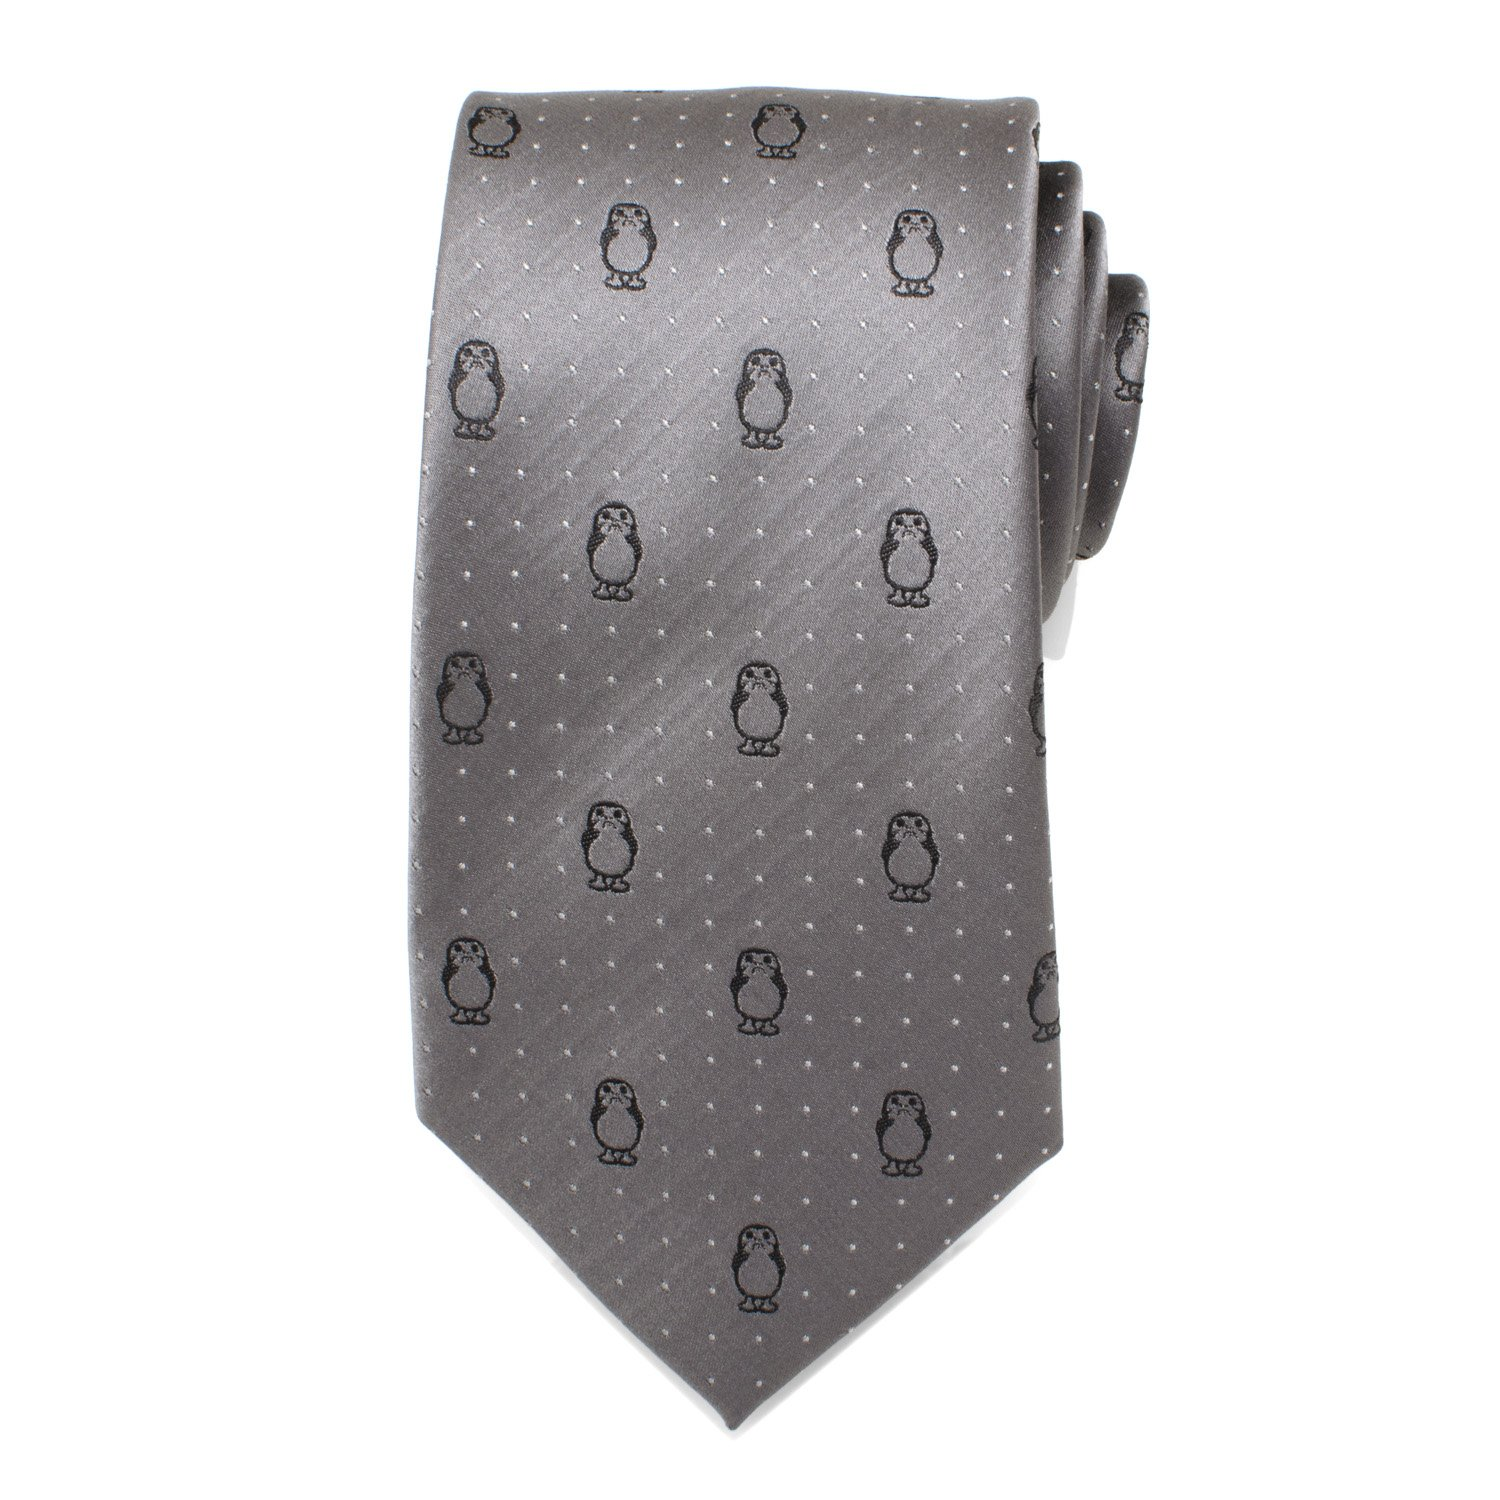 Star Wars - Corbata, diseño de lunares, color gris: Amazon.es ...